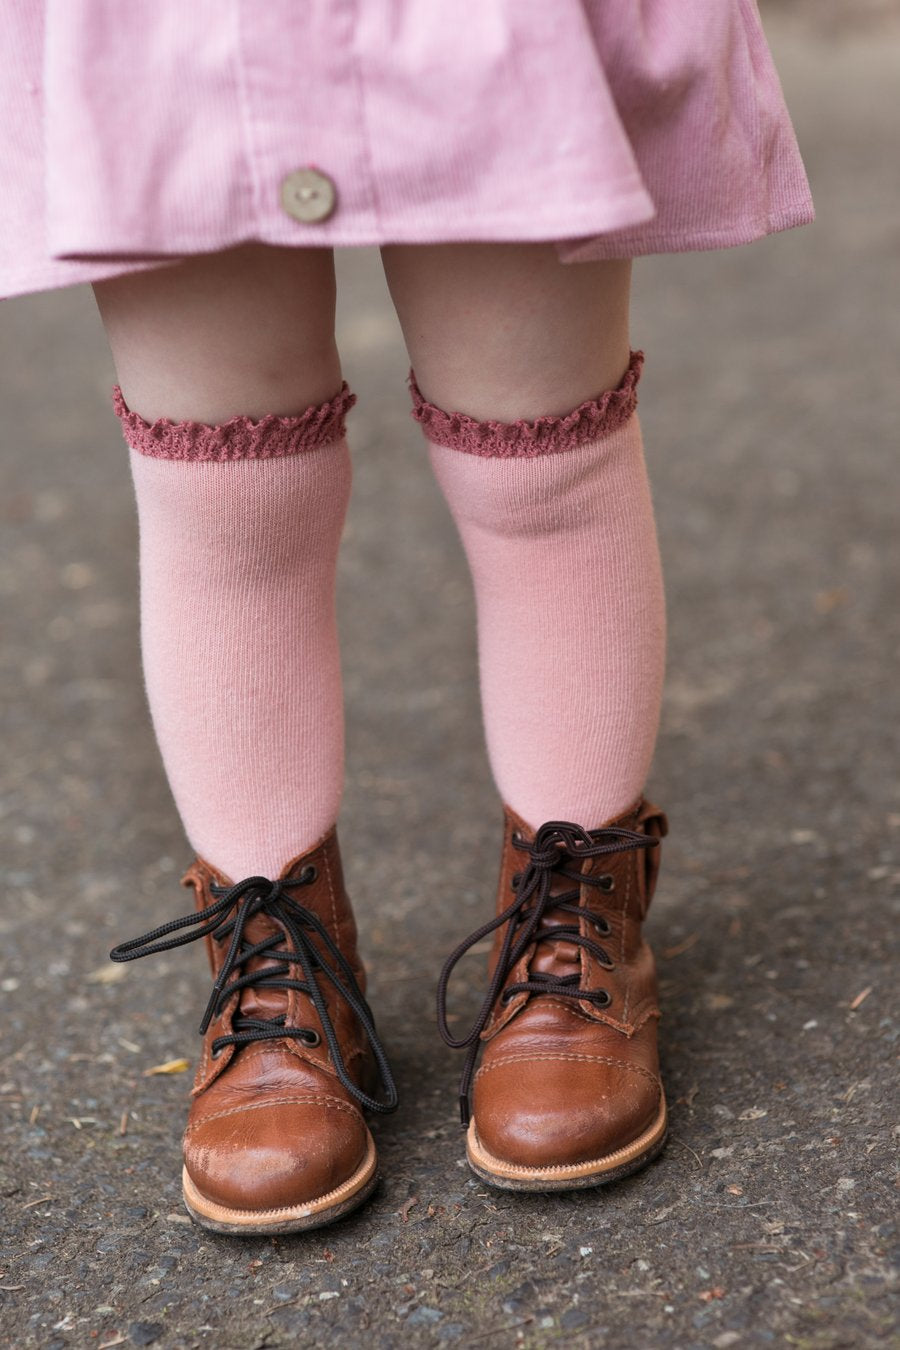 LITTLE STOCKING COMPANY BLUSH + MAUVE LACE TOP KNEE HIGHS